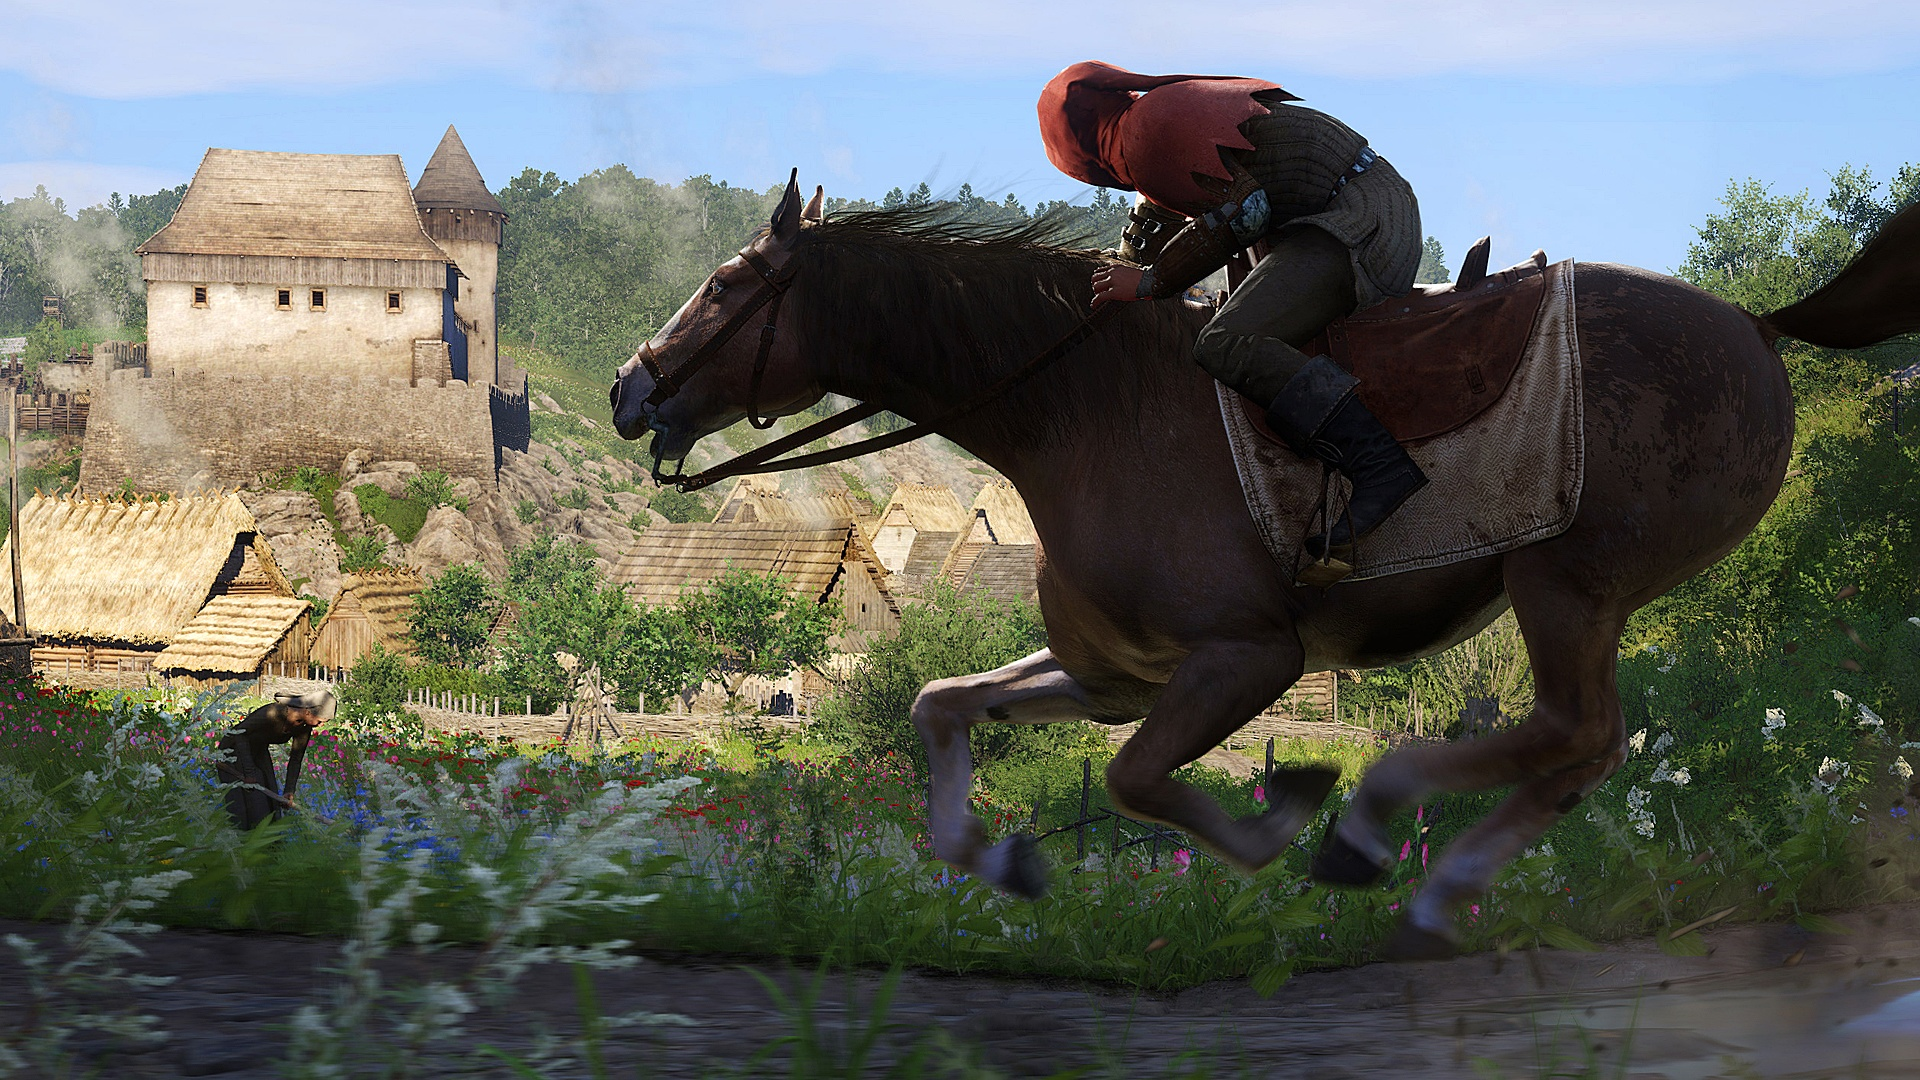 Kingdom Come Karte Komplett.Kingdom Come Deliverance Game Of The Year Edition Mit